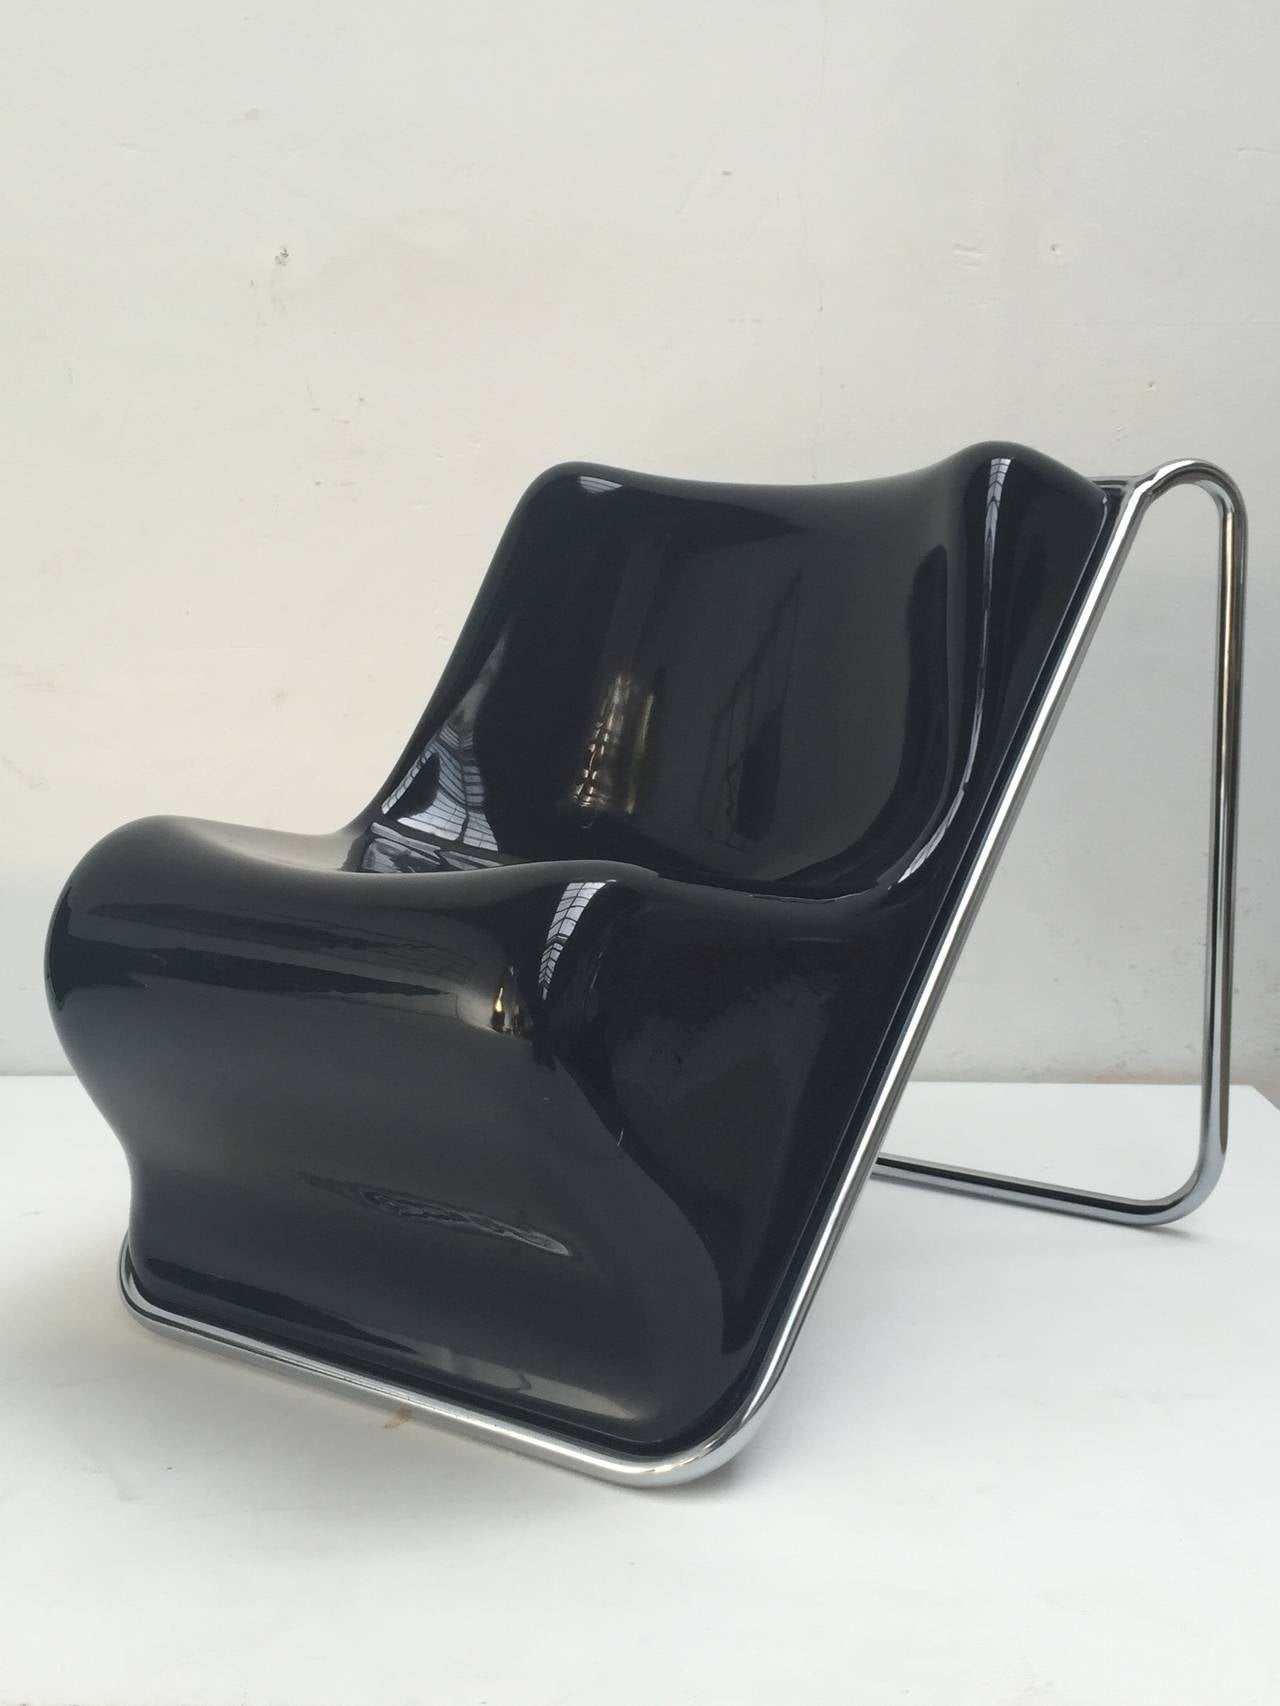 P110 Lounge Chairs by Rosselli, Partner of Gio Ponti, Exhibited at MoMA, NY 2